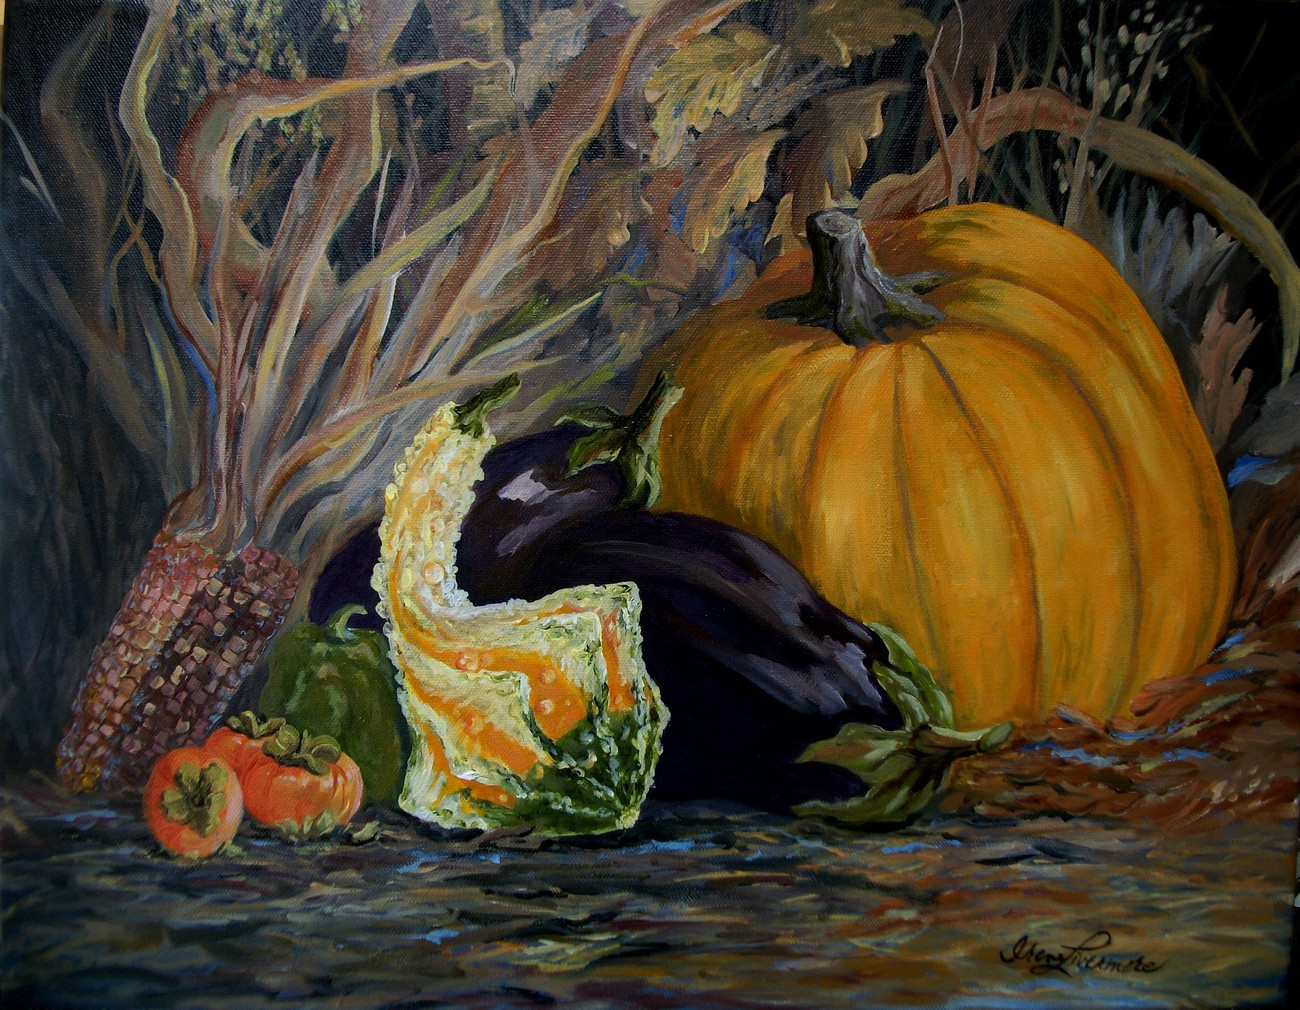 Fall Still Life Pumpkin Corn Persimmon Eggplant Realistic Original Oil Painting